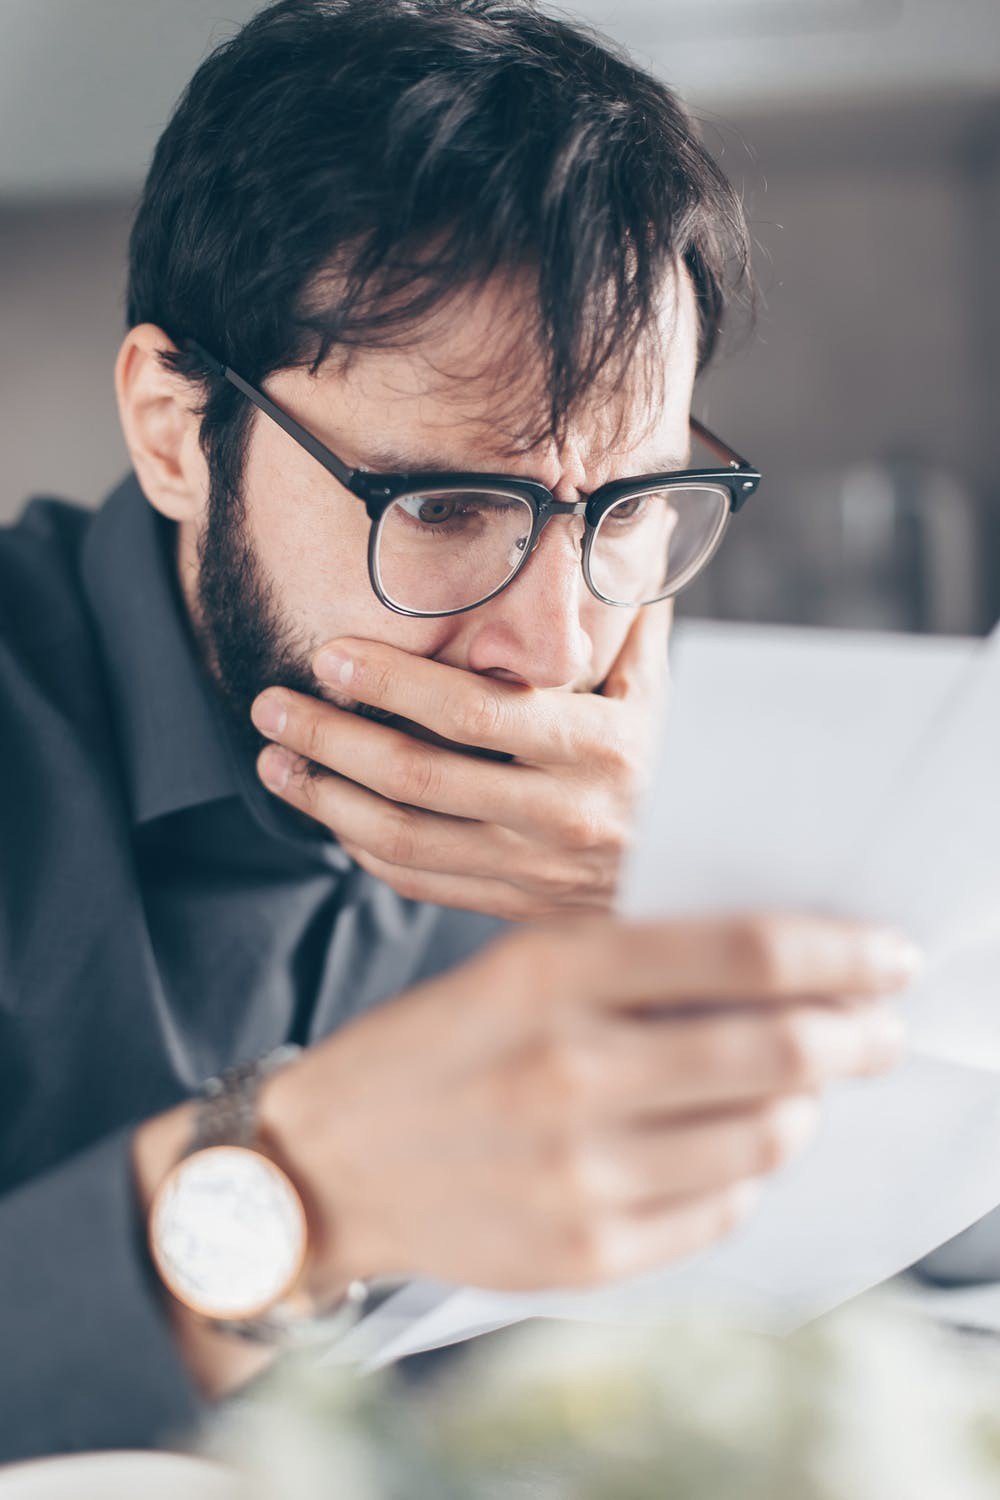 Man realizing that Bitcoin isn't a scam.